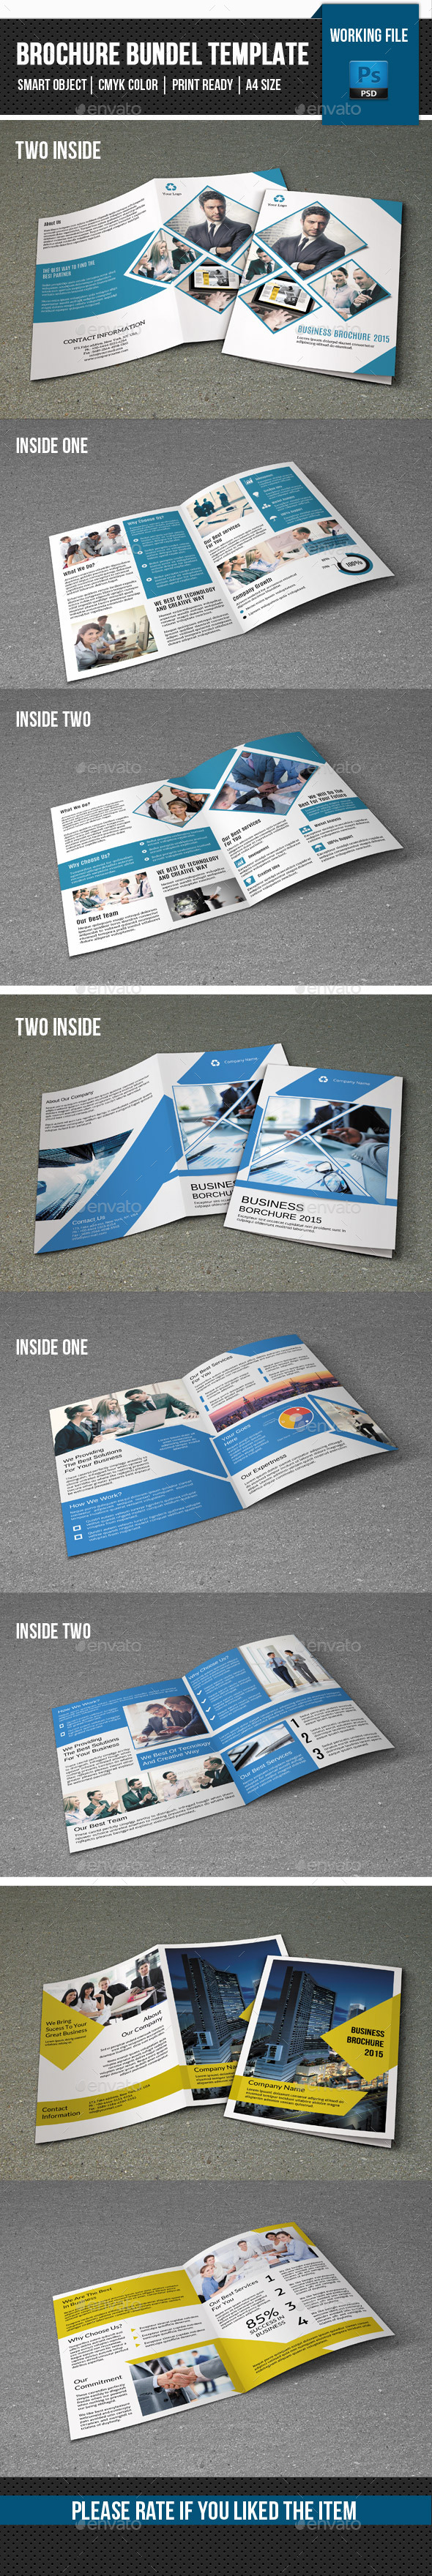 3 in 1 Business Brochure Bundle-V12 - Corporate Brochures